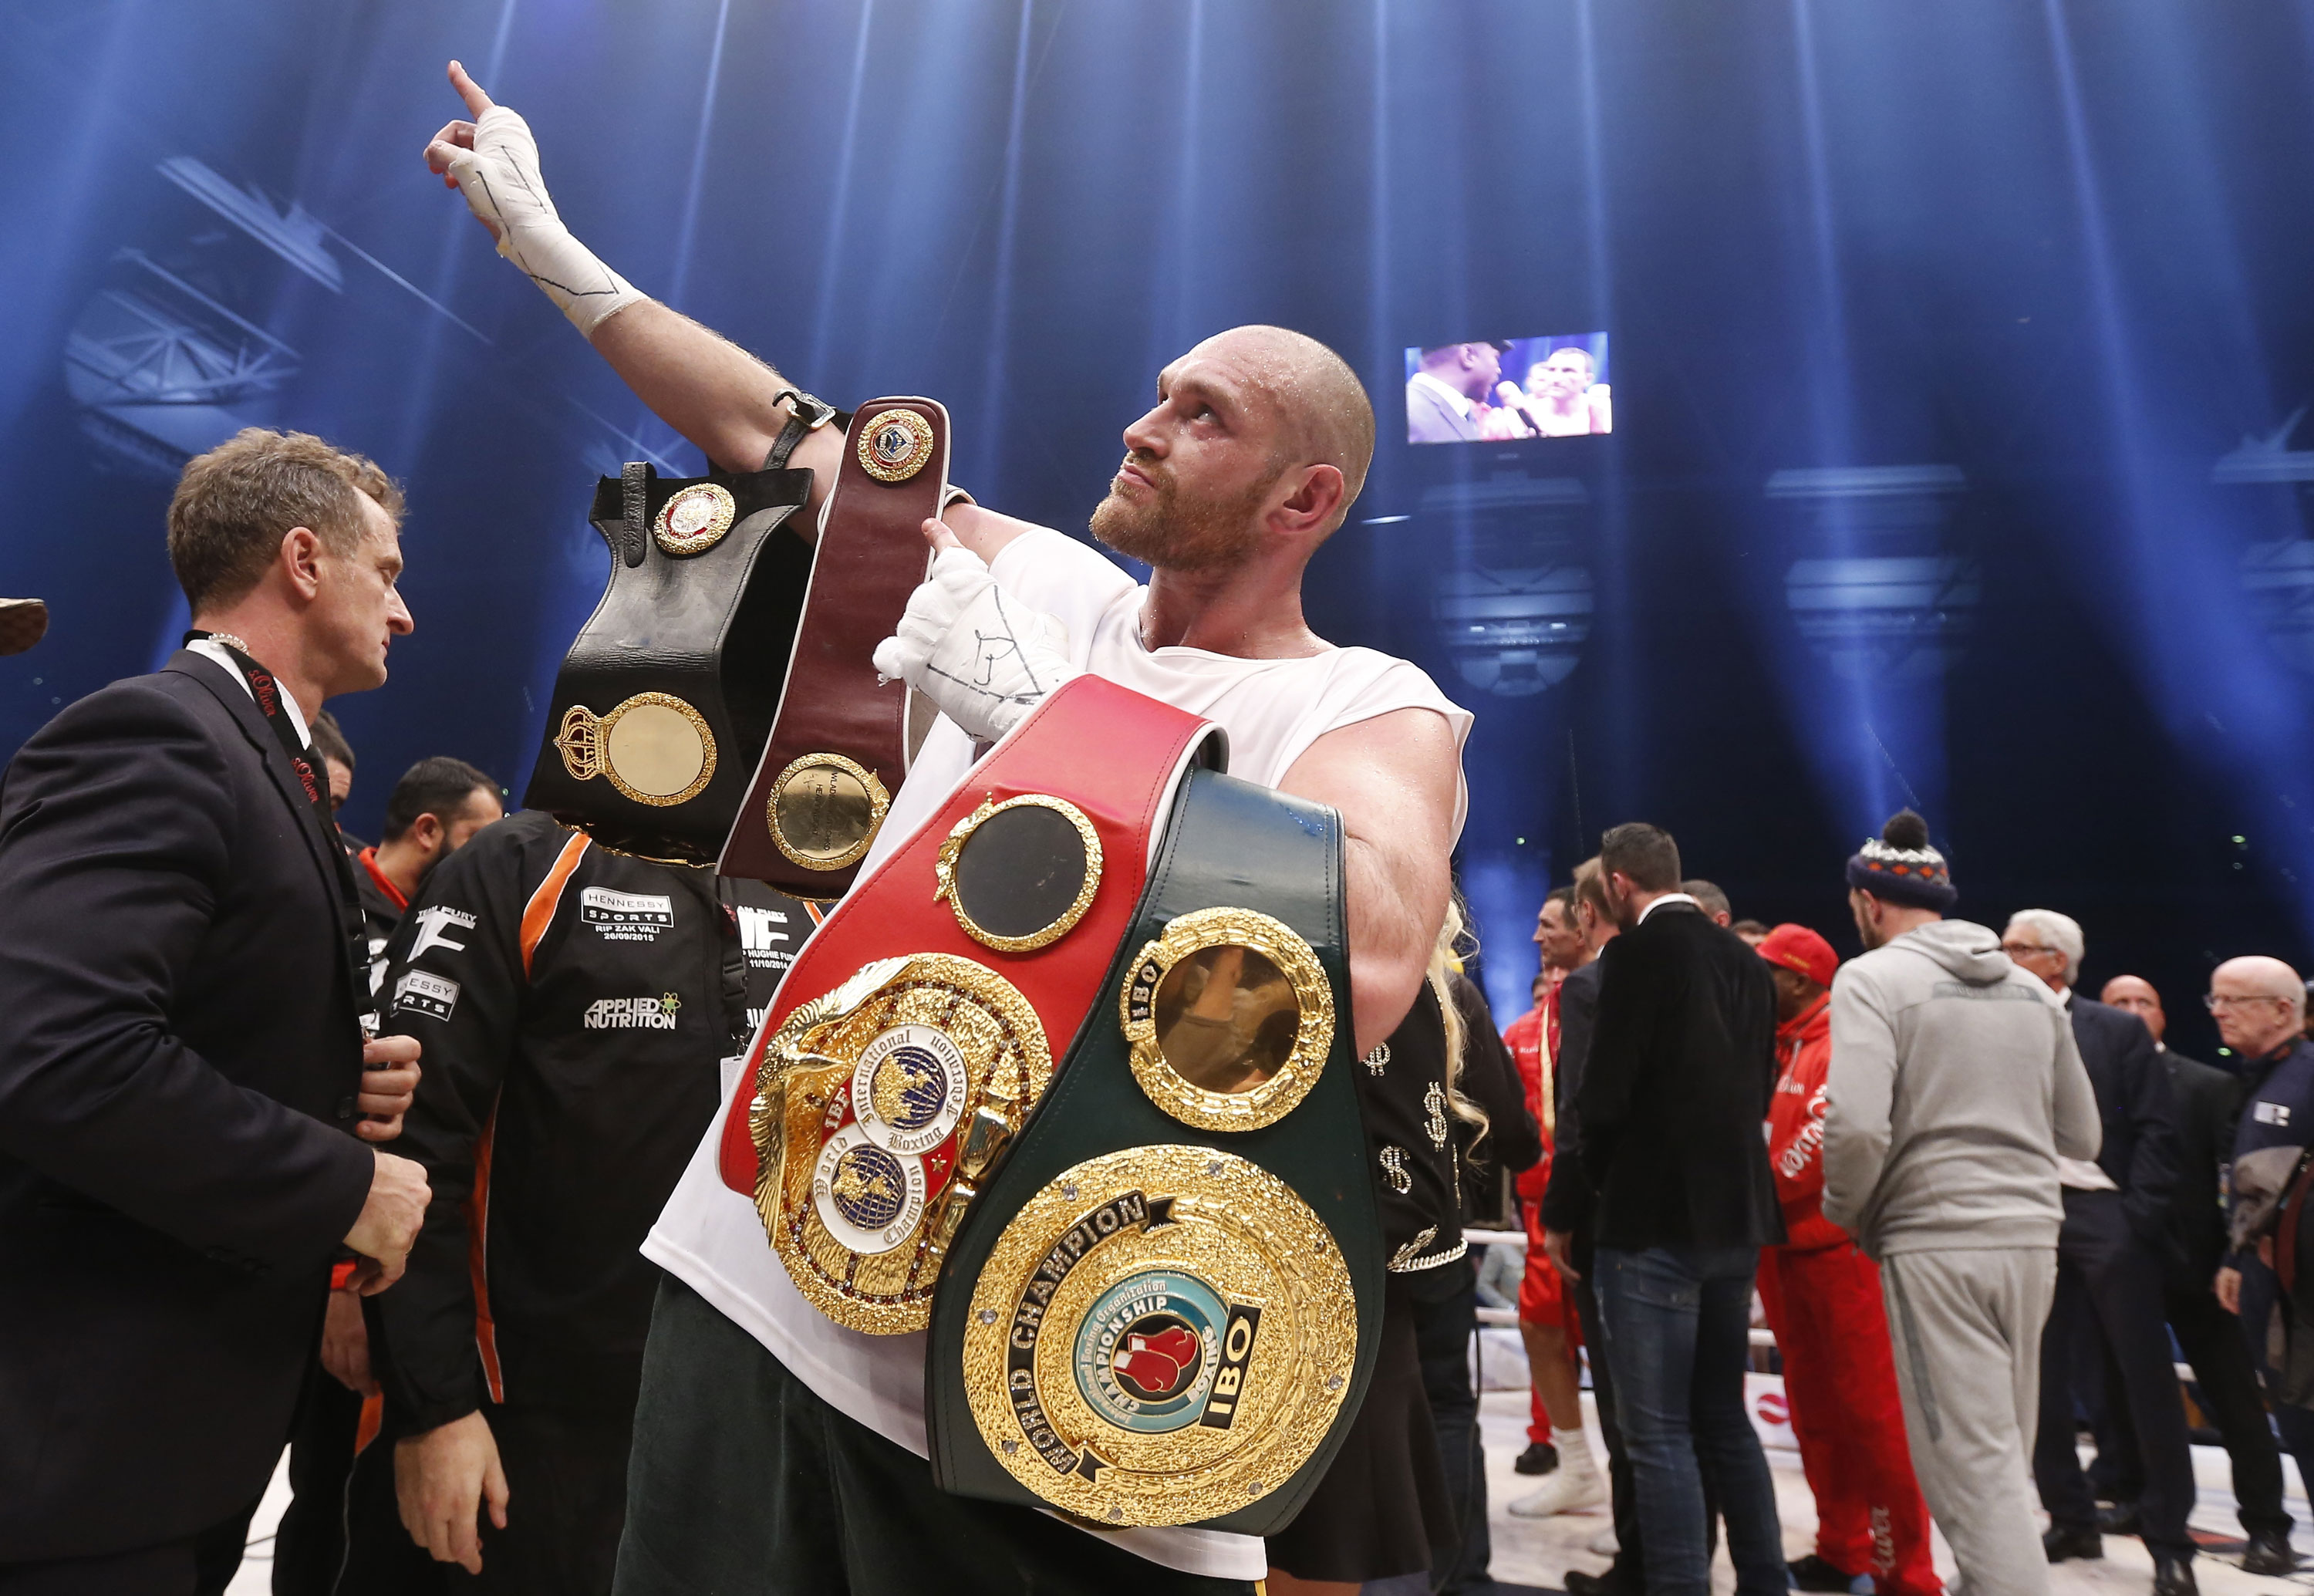 Tyson Fury is the new heavyweight world champion after defeating Wladimir Klitschko by unanimous decision. [Lee Smith/Livepic/Reuters]